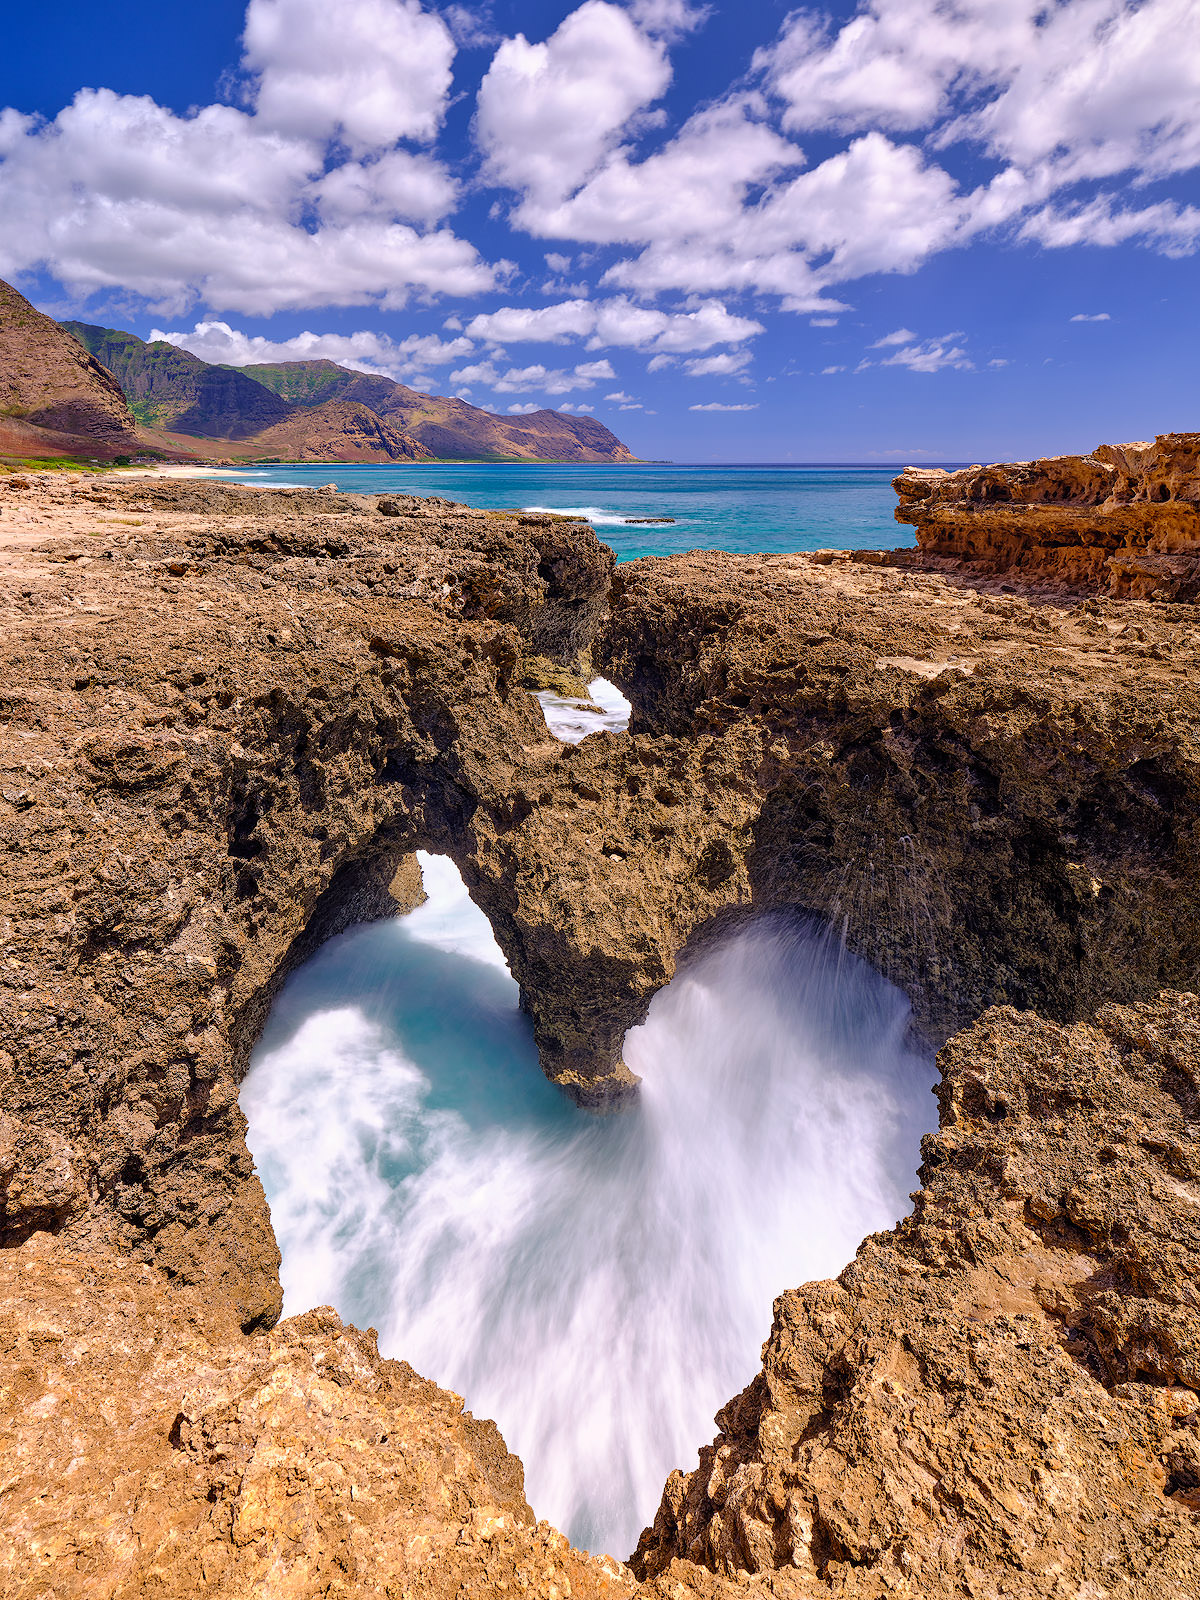 photograph of a heart shaped rock formation with incoming waves on the west side of the hawaiian island of Oahu. High resolution photography by Andrew Shoemaker